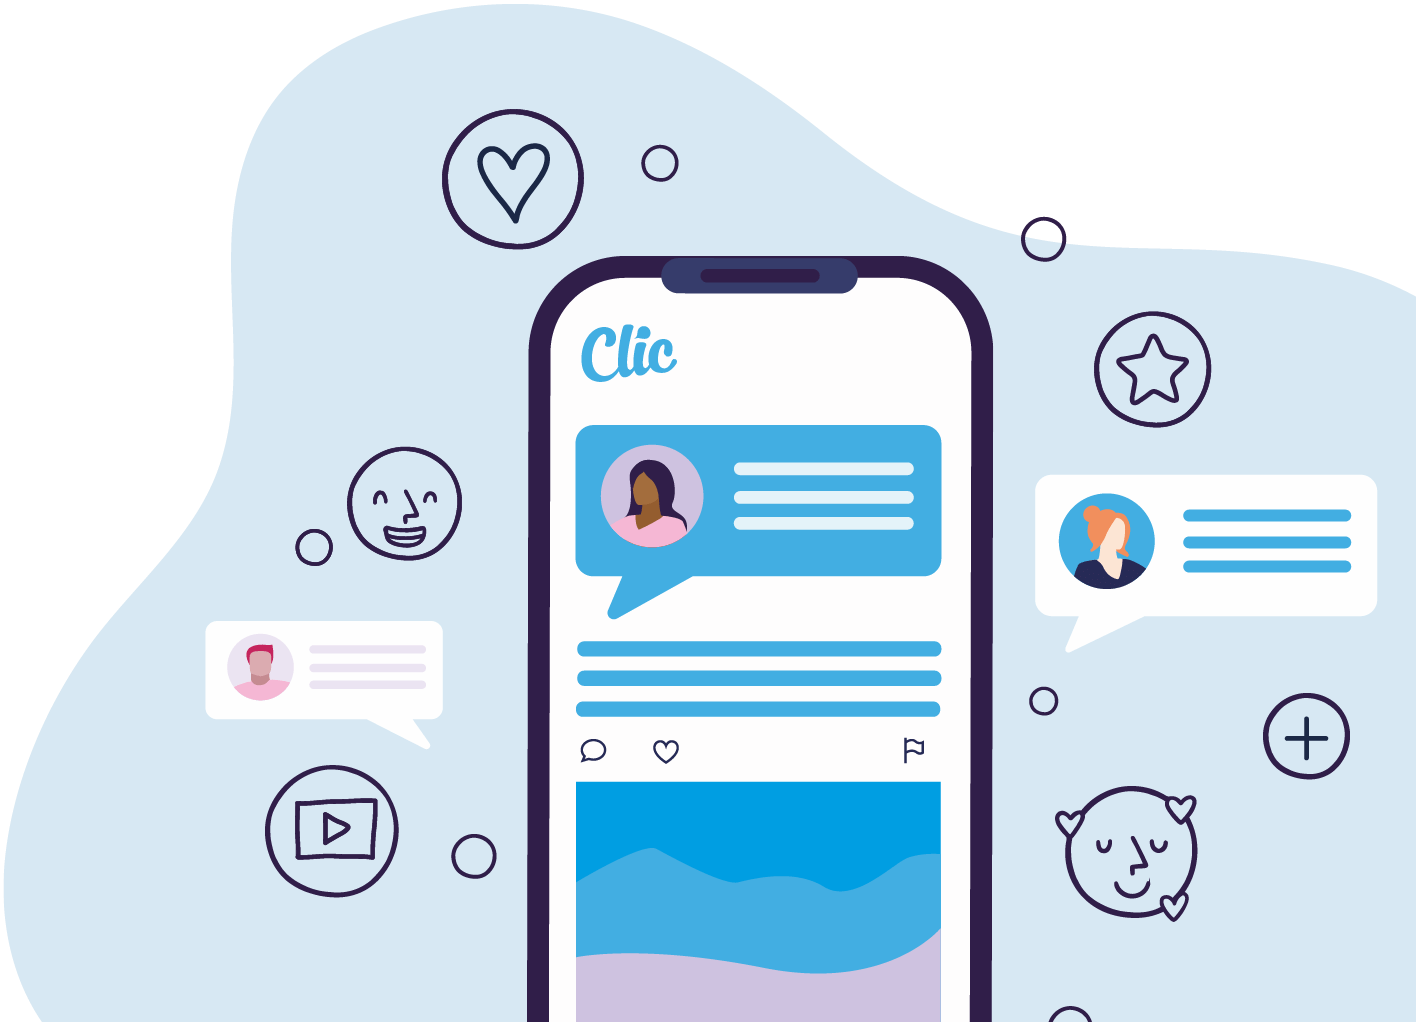 Illustration of mobile phone with CLIC